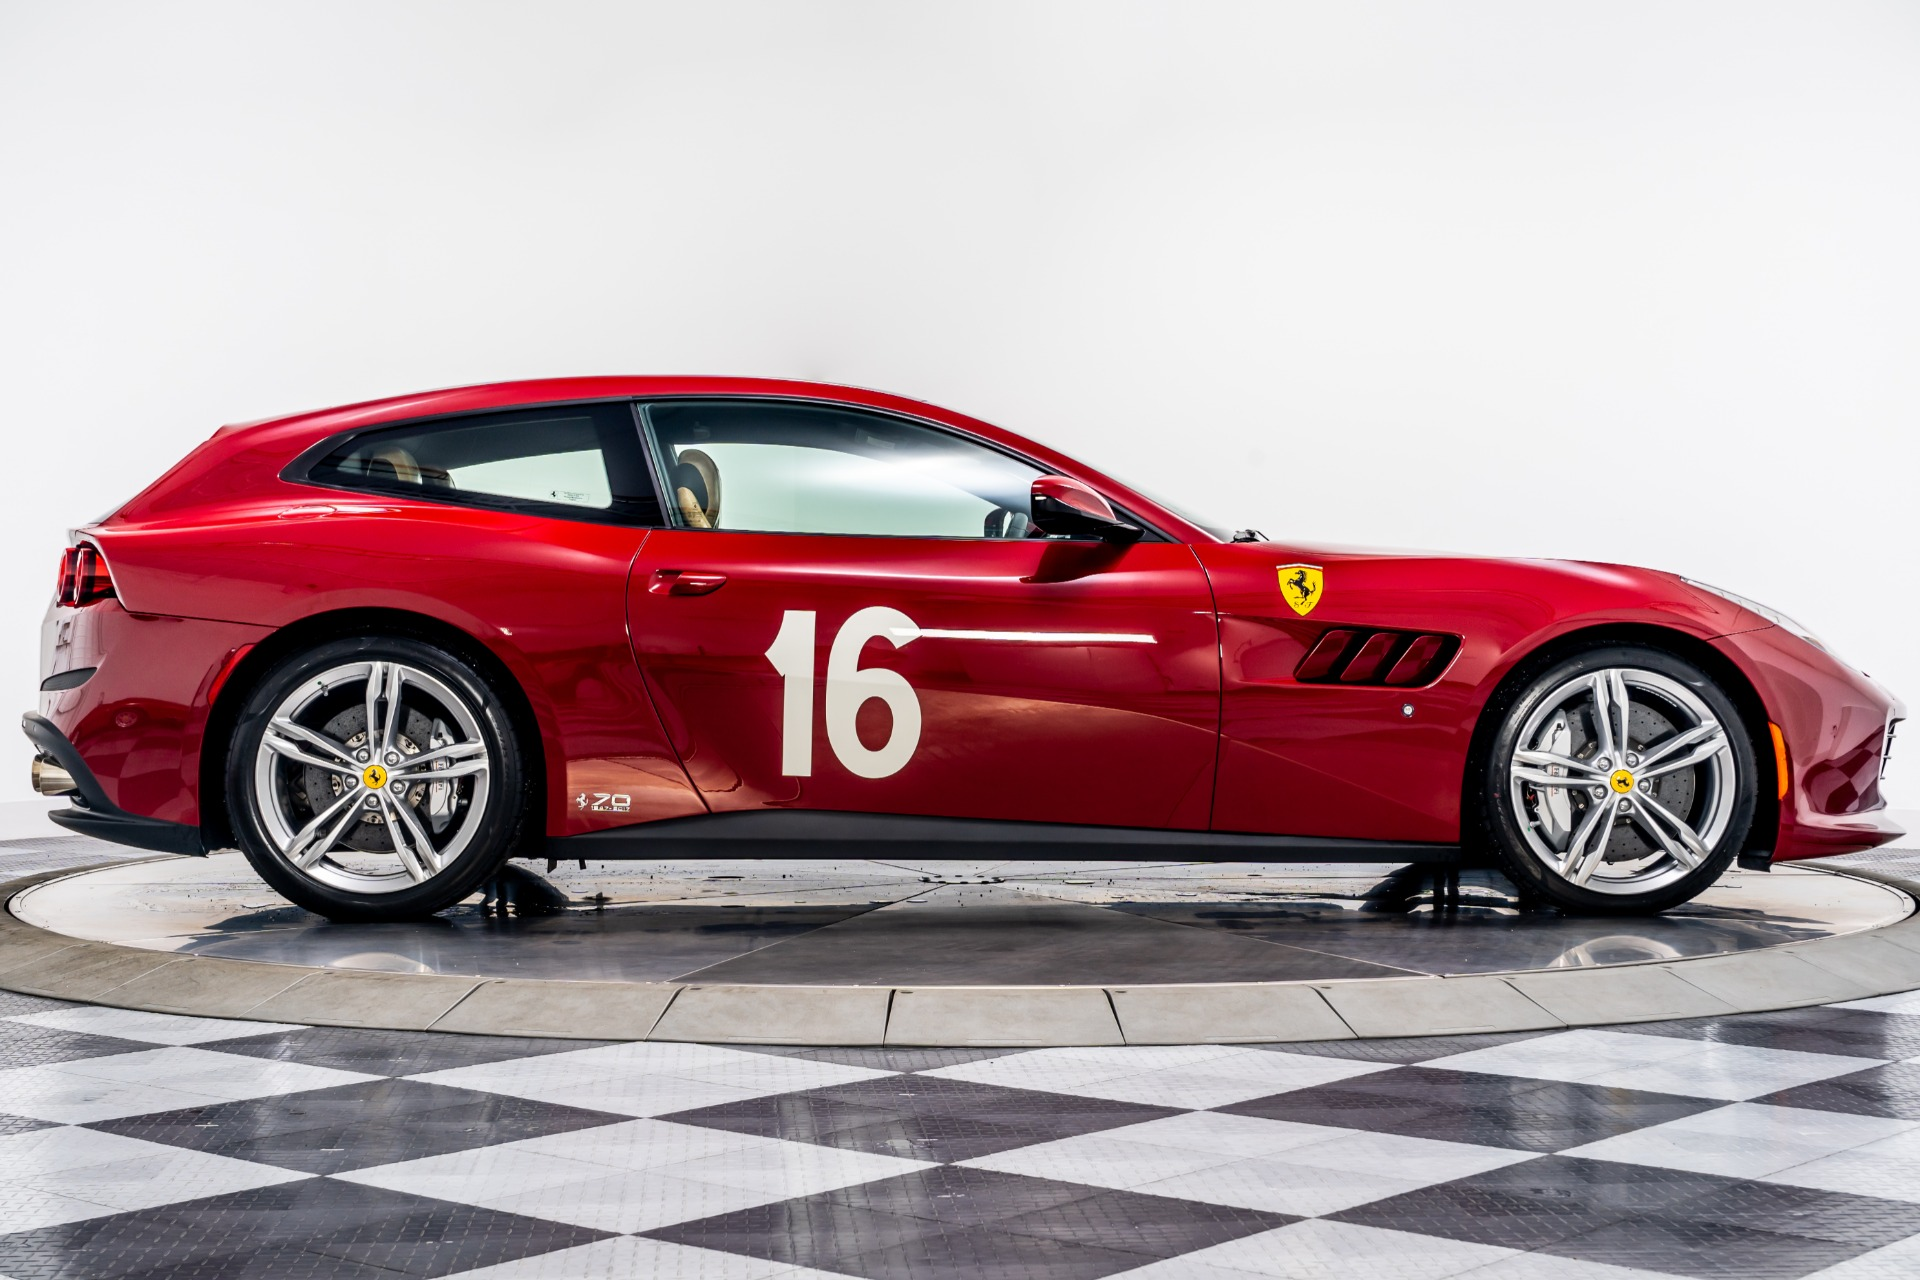 Used 2018 Ferrari Gtc4lusso 70th Anniversary For Sale Sold Marshall Goldman Beverly Hills Stock Lusso70th